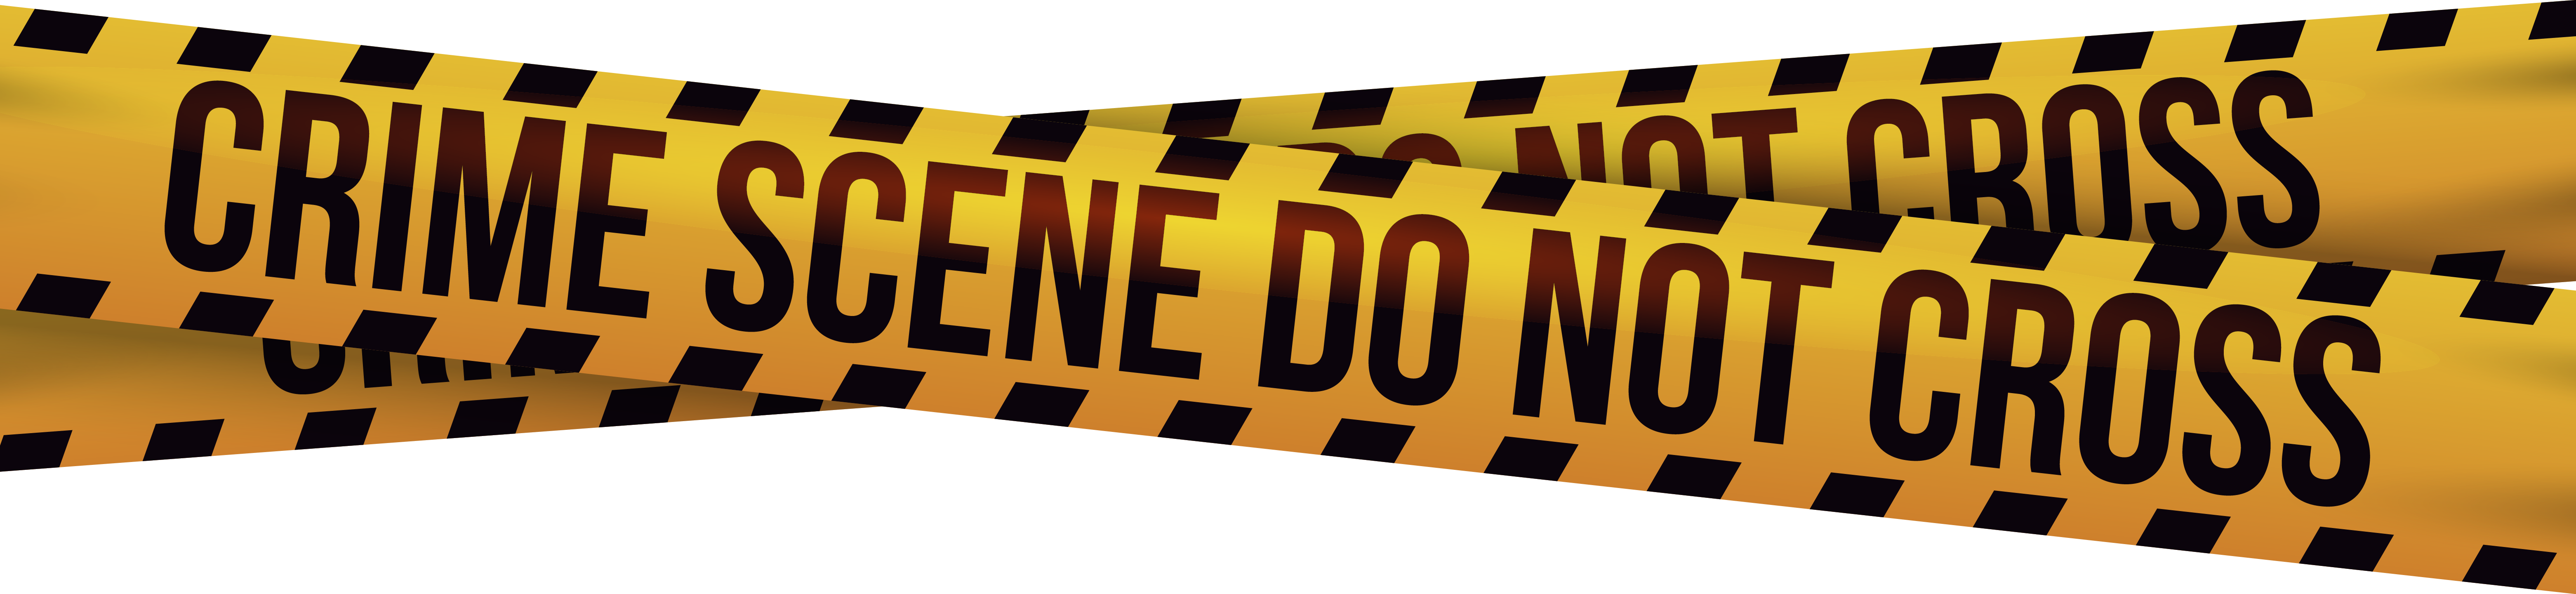 Warning tape png. Police images free download